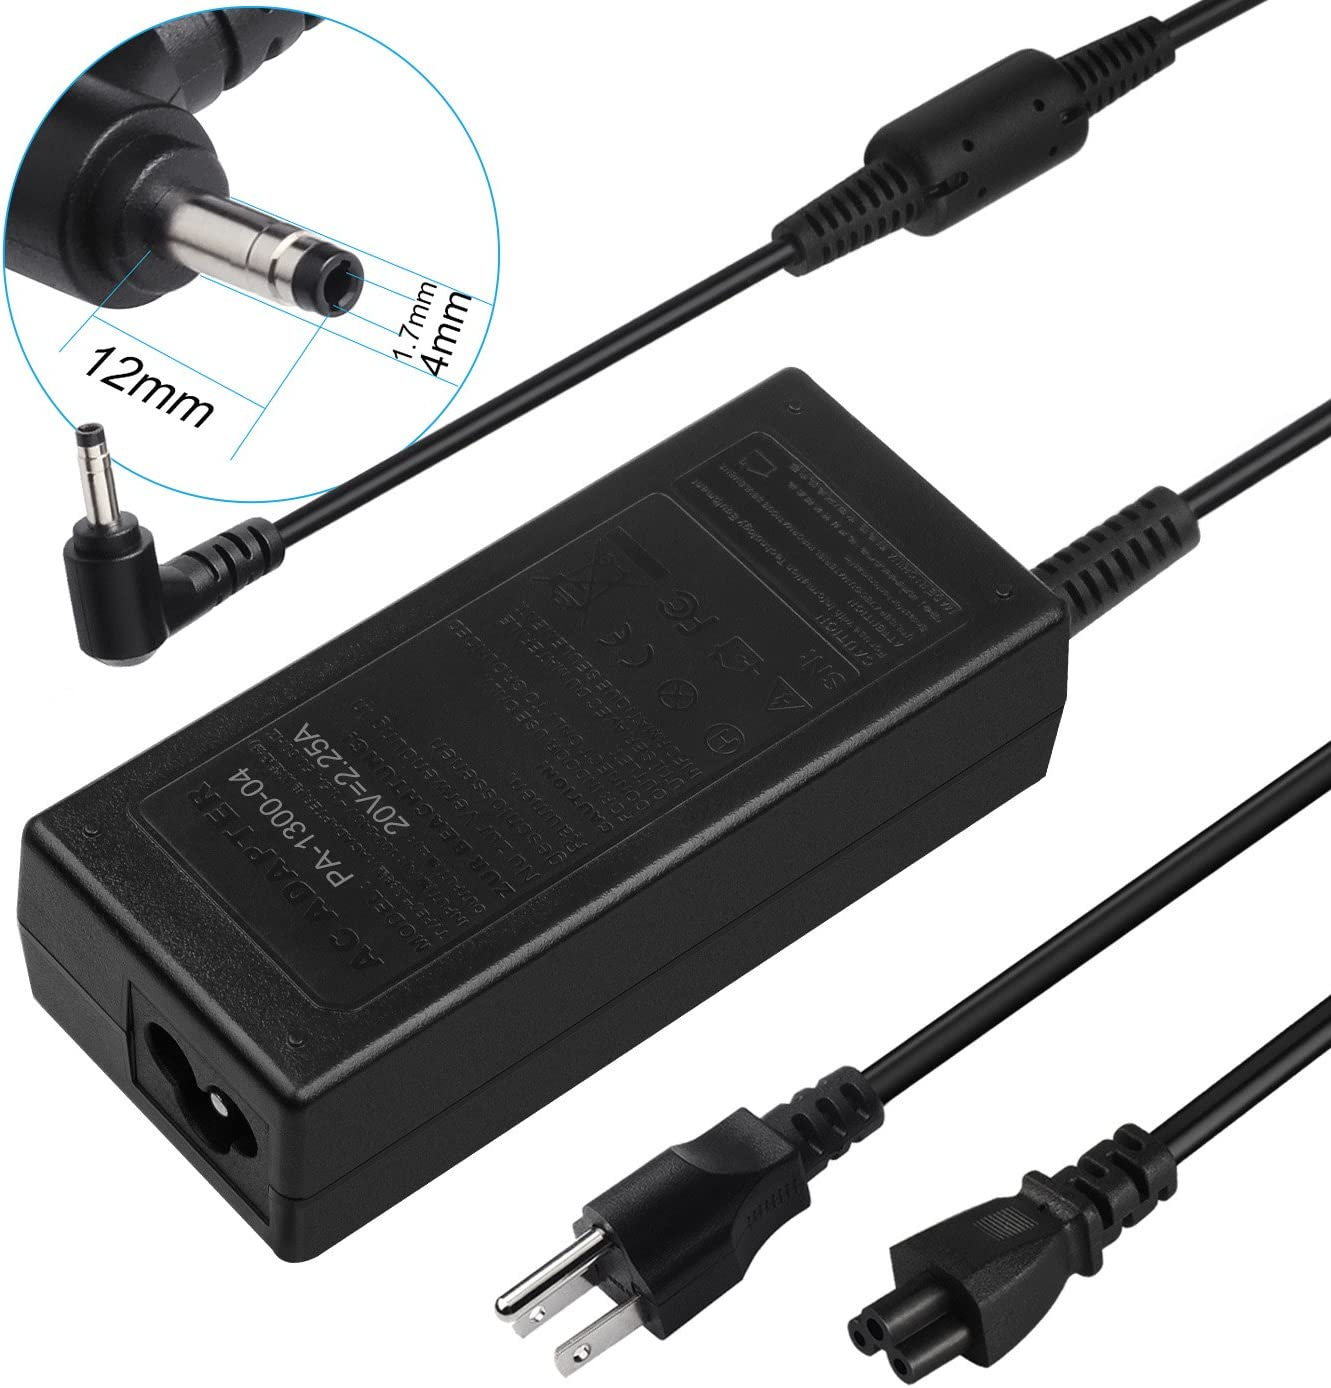 AC Charger Adapter for Lenovo IdeaPad 100s 110 310 320 330 330S 310-15ABR 310-15IKB 320-15ABR 320-15IAP 330-15ARR 330-15IGM 80XM 80XR 80XS 80XL 81FB 310S 320S 510 510S 520s 710S Laptop Power Supply